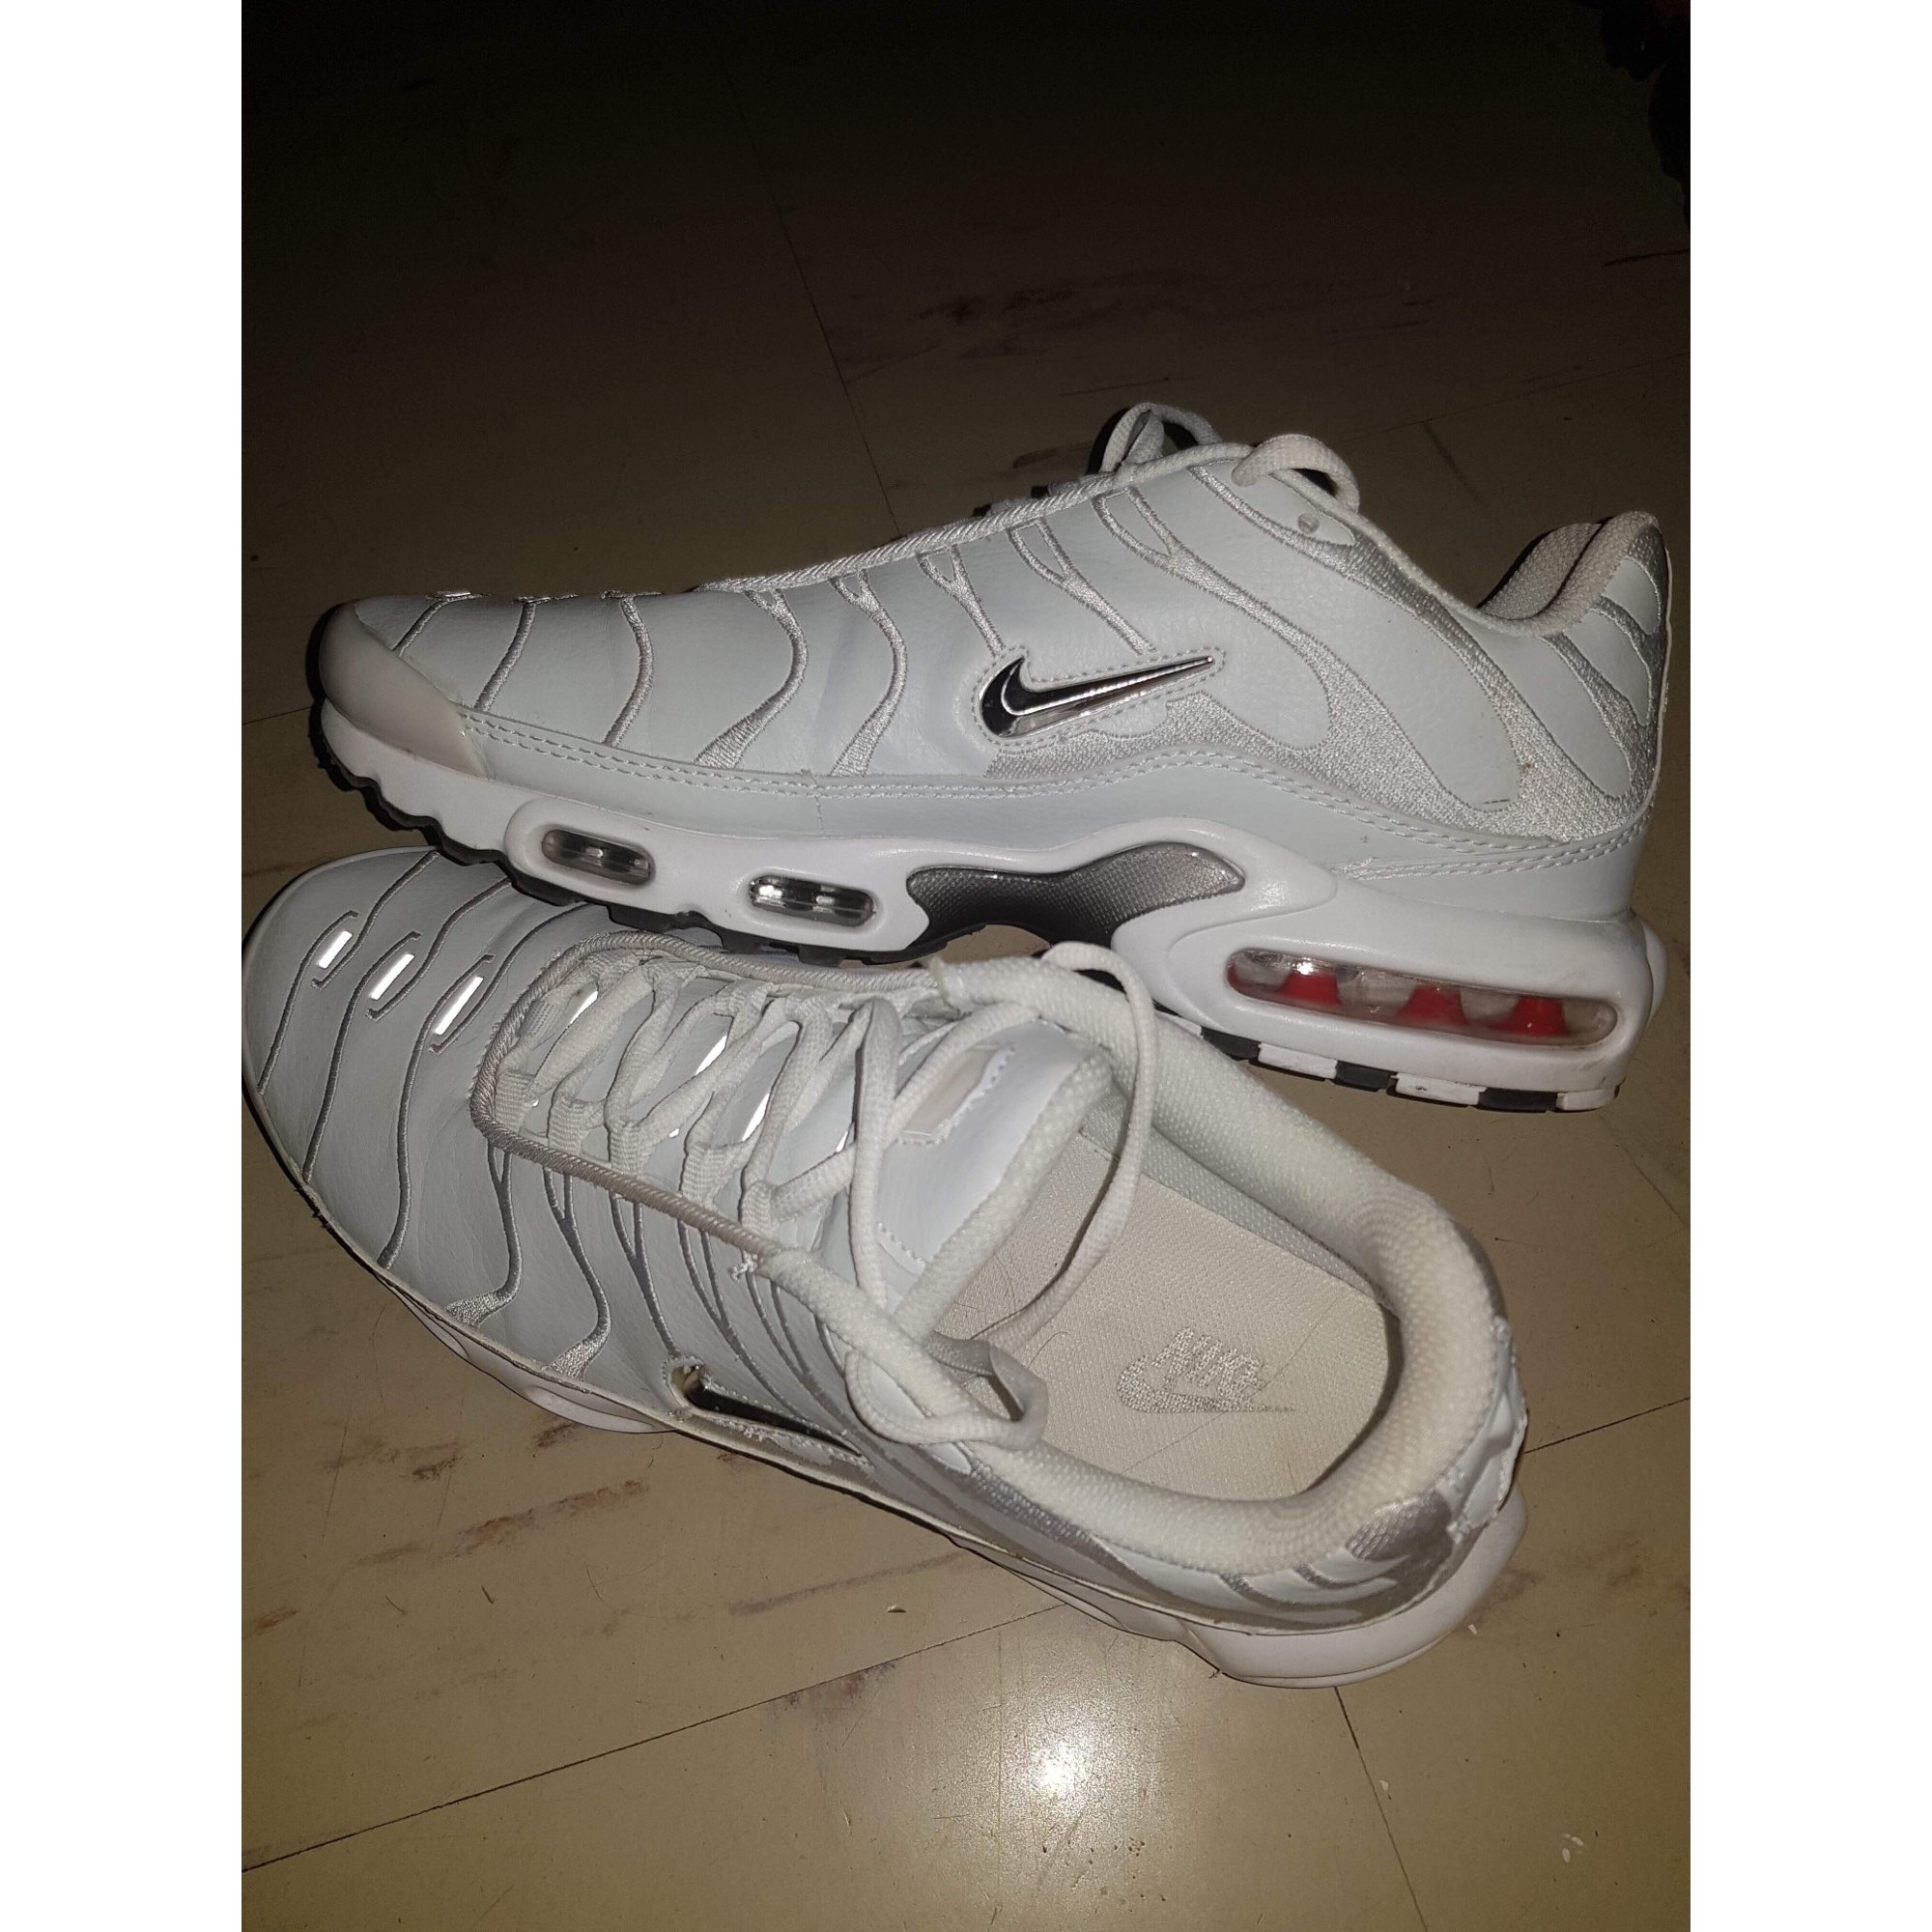 a0f61b524e6 Baskets NIKE TN 46 blanc - 7987945